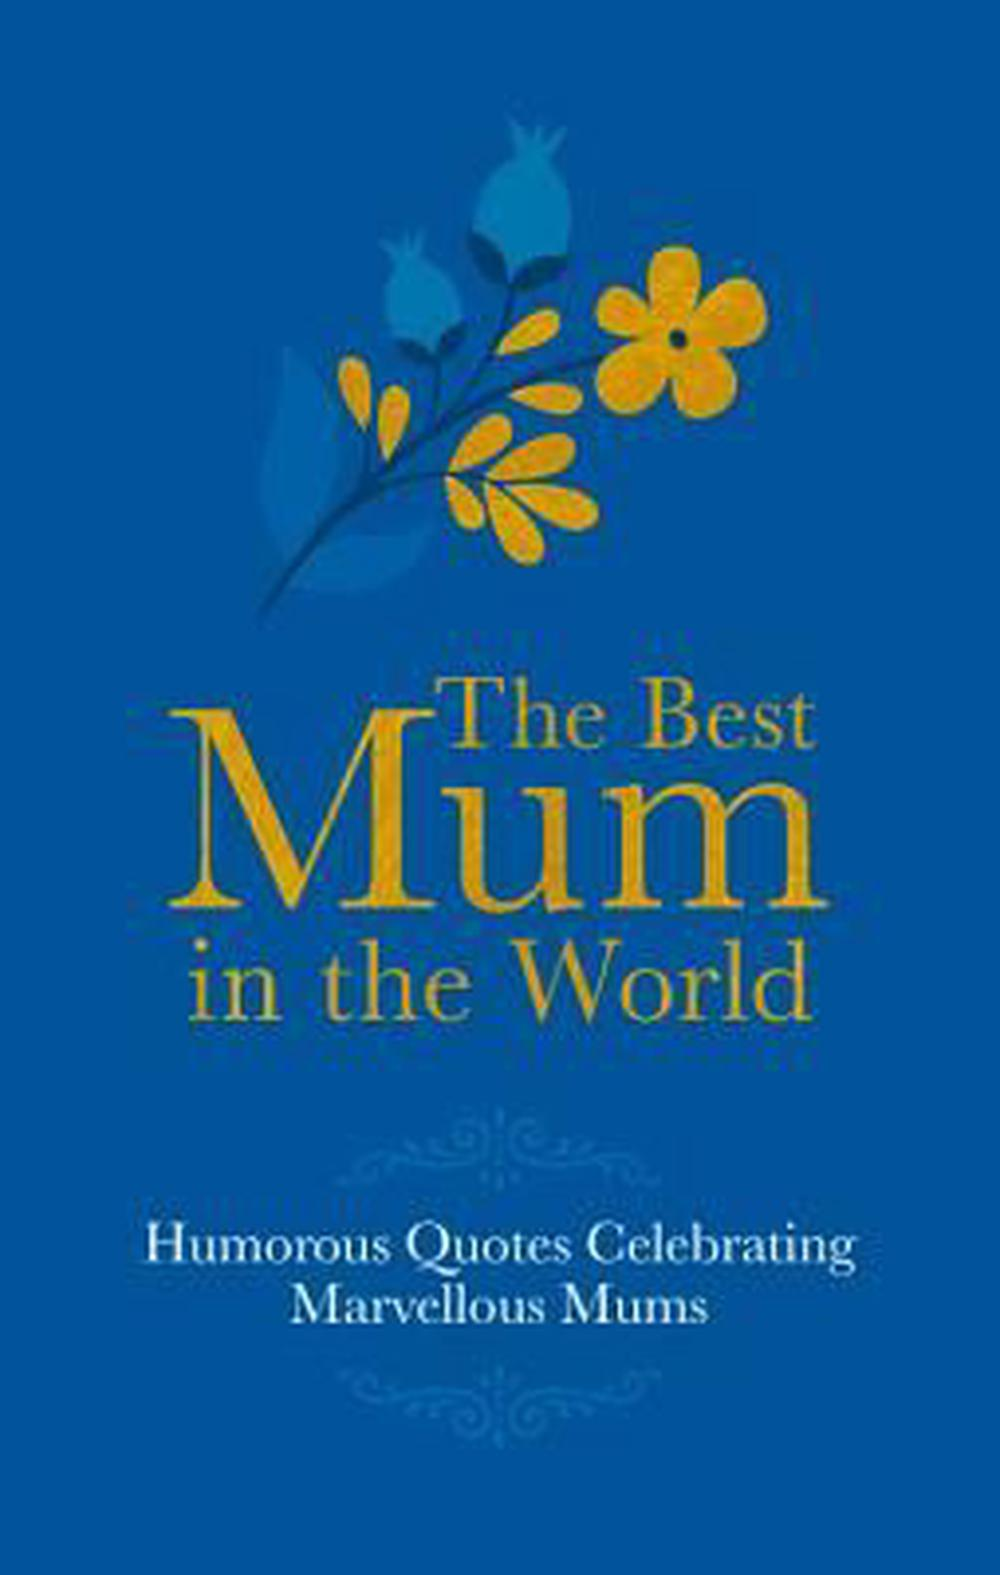 The Best Mum in the World!